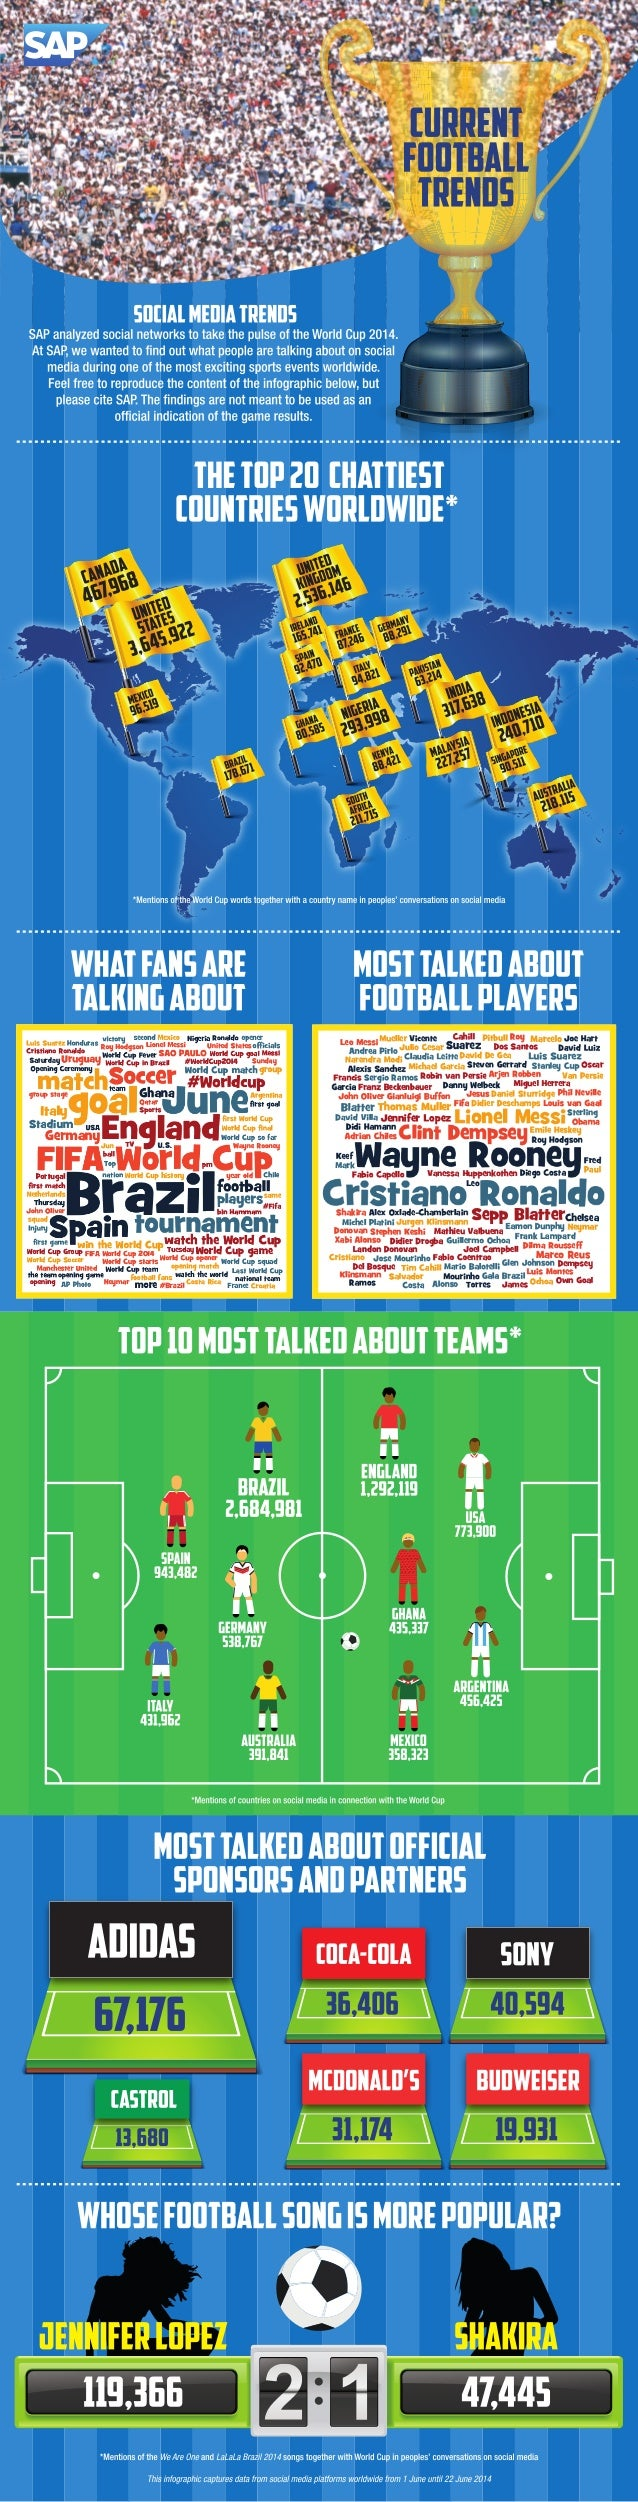 SAP World Cup Insights